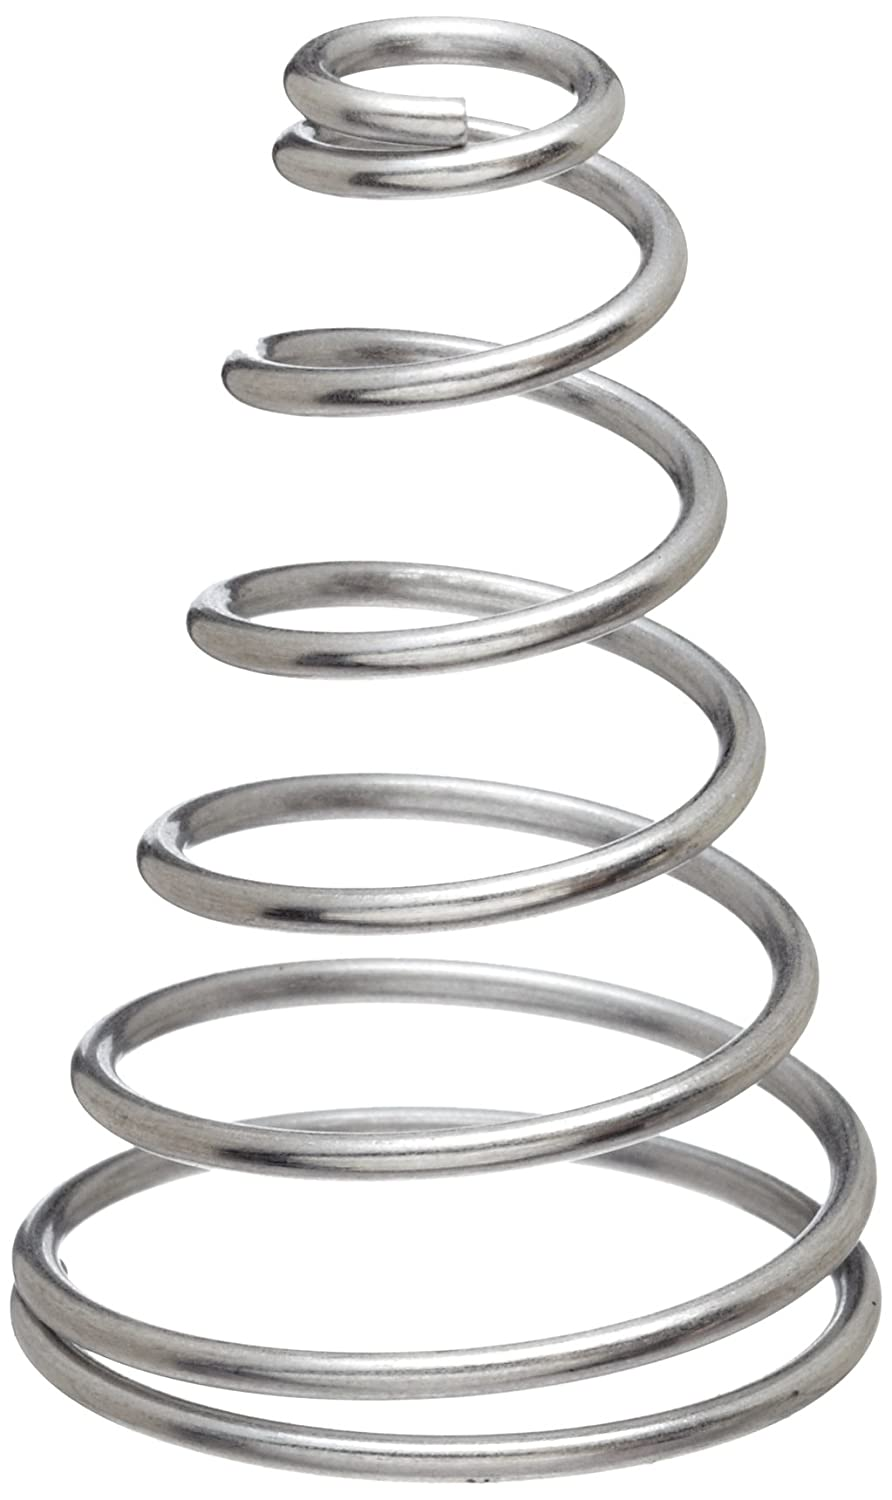 Conical Compression Spring, Type 302 Stainless Steel, Inch, 1.5 ...